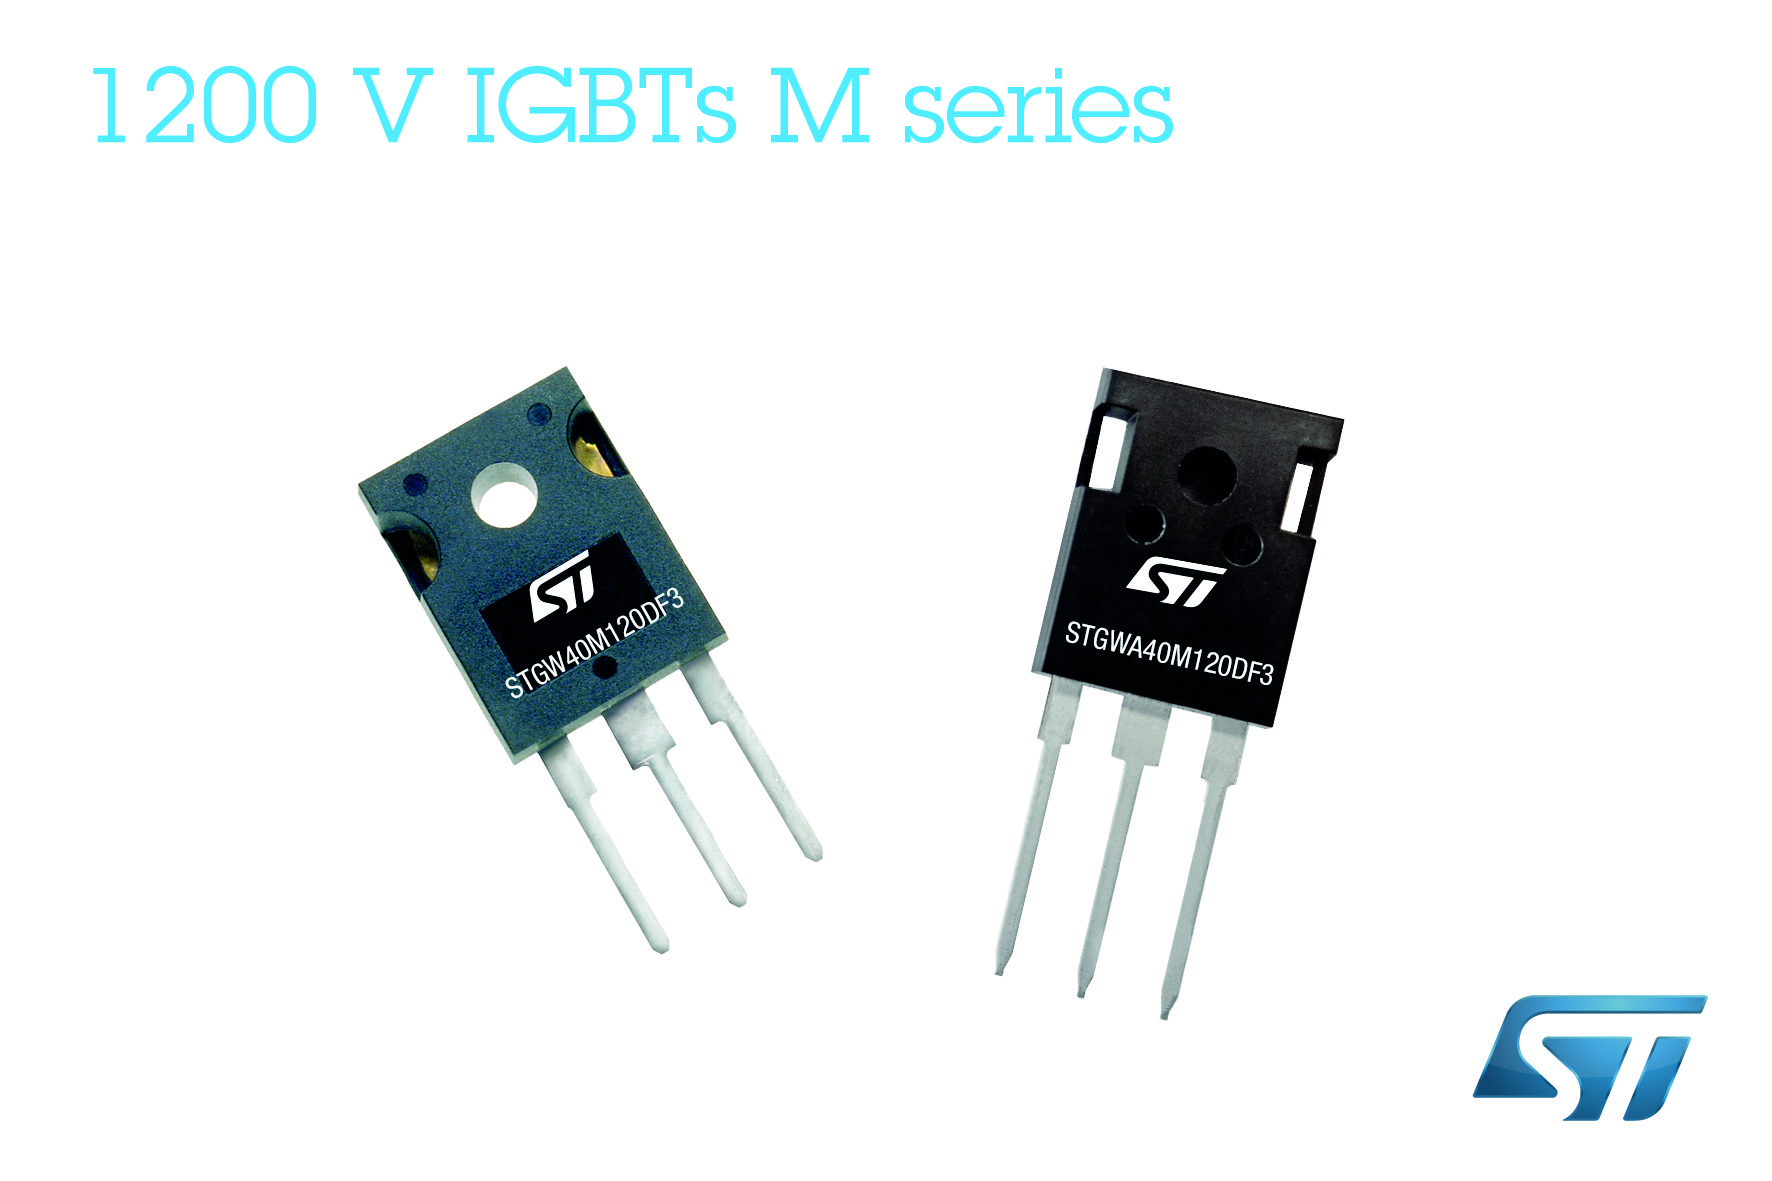 M-Series IGBTs from STMicro tout efficiency and ruggedness